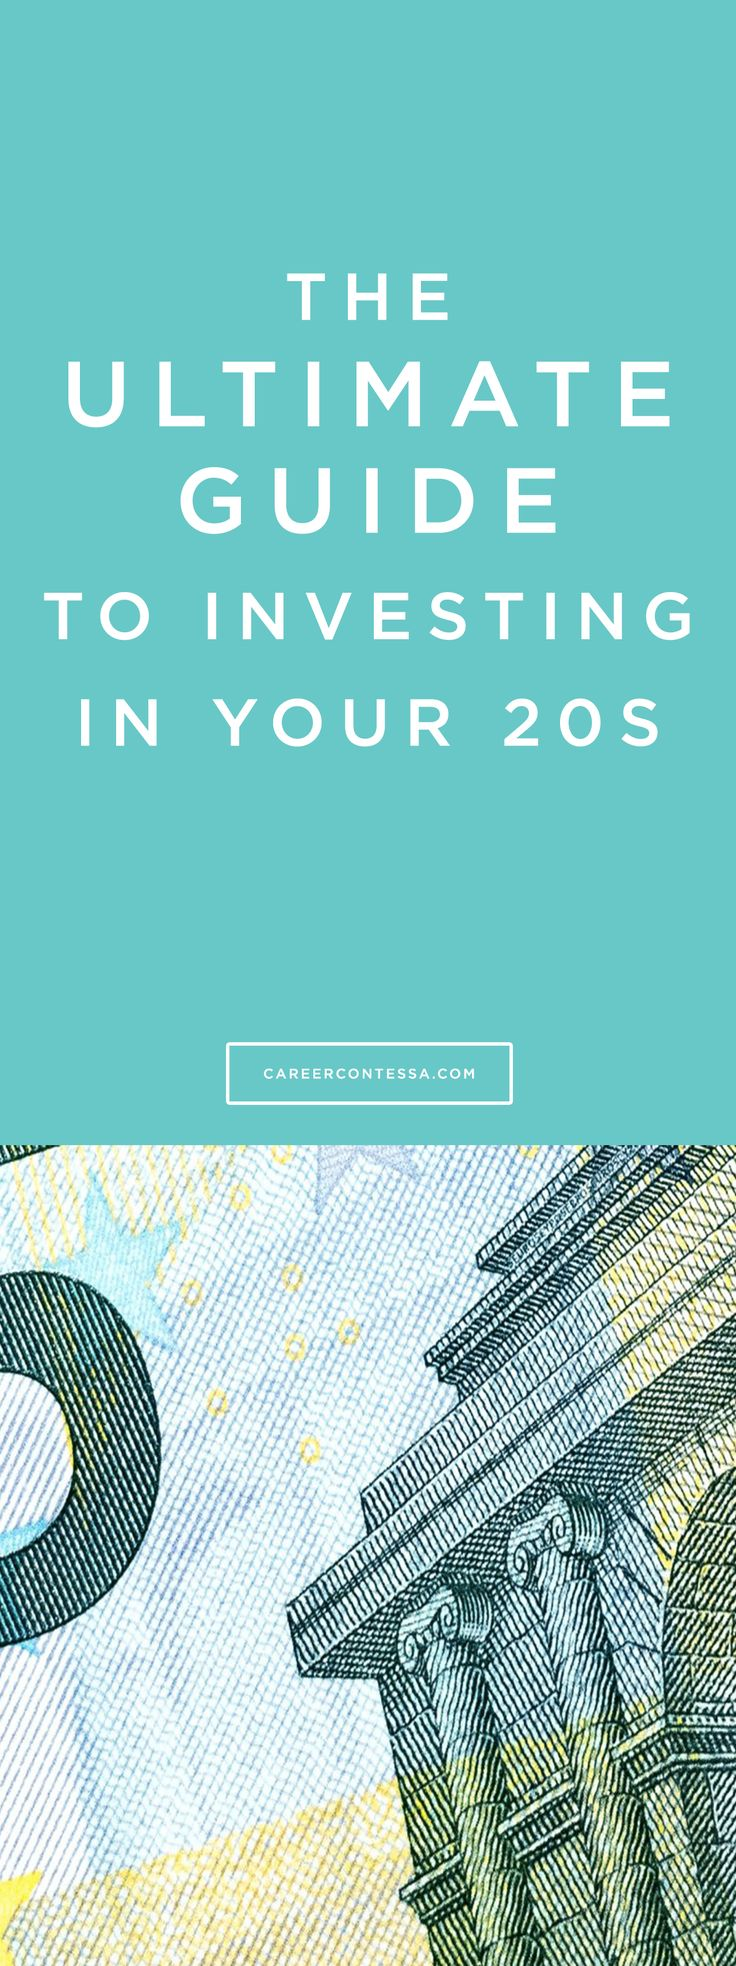 How to Start Investing Your Money in Your 20s